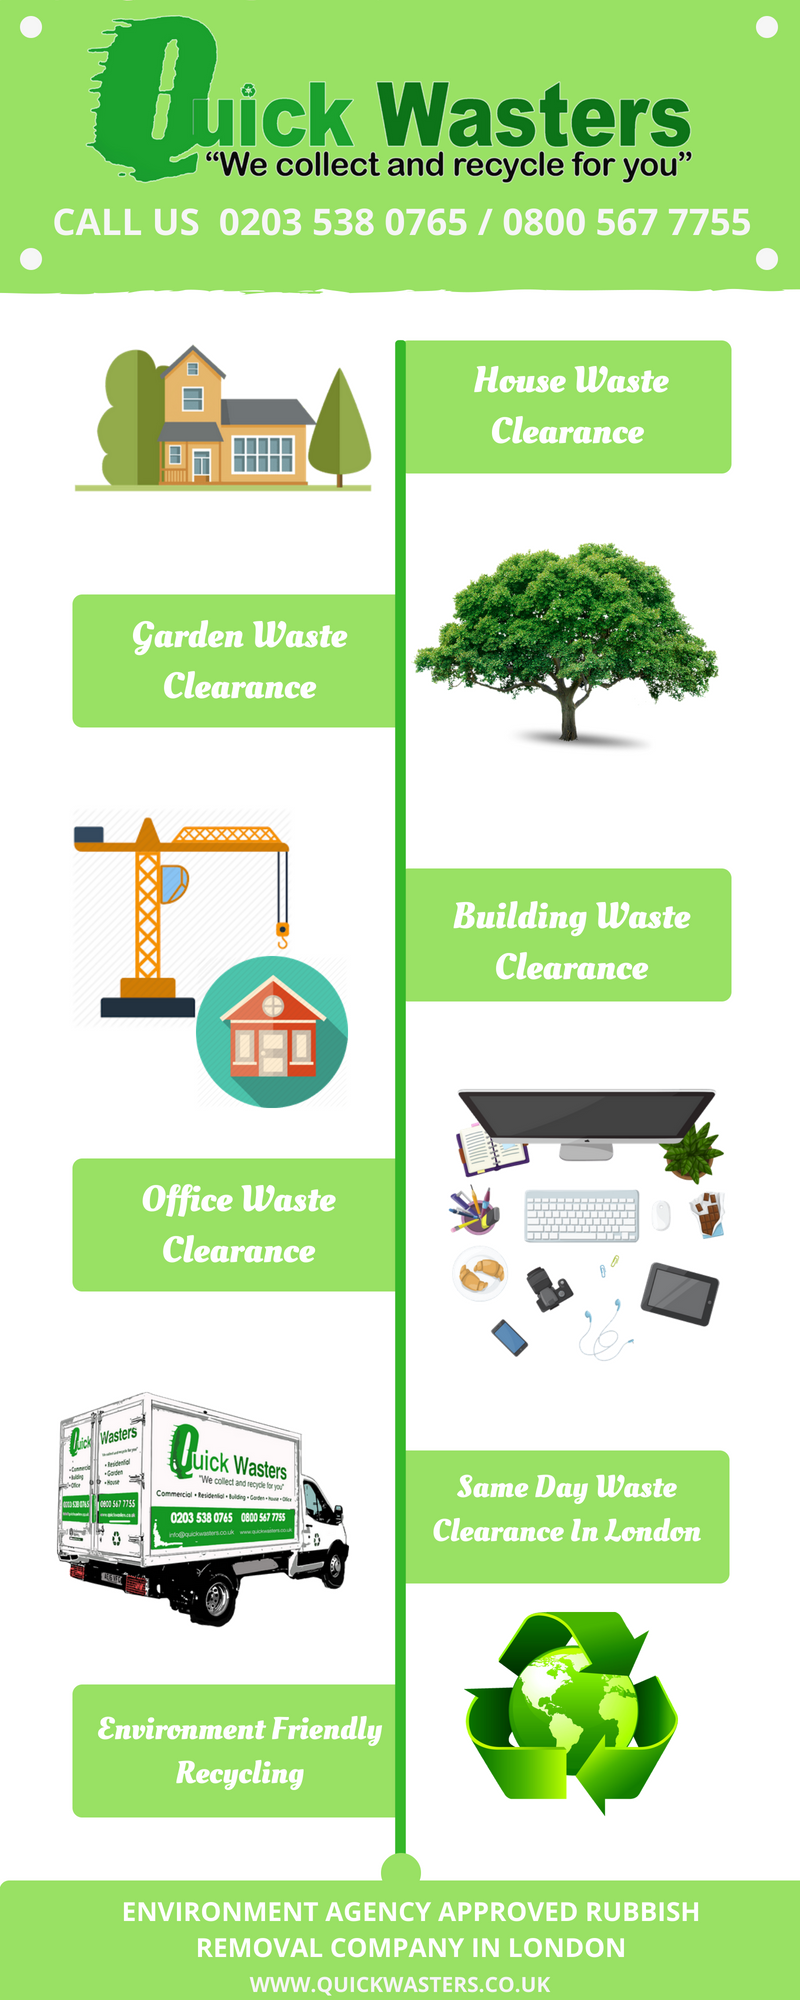 Quickwasters - Rubbish Removal Company in London